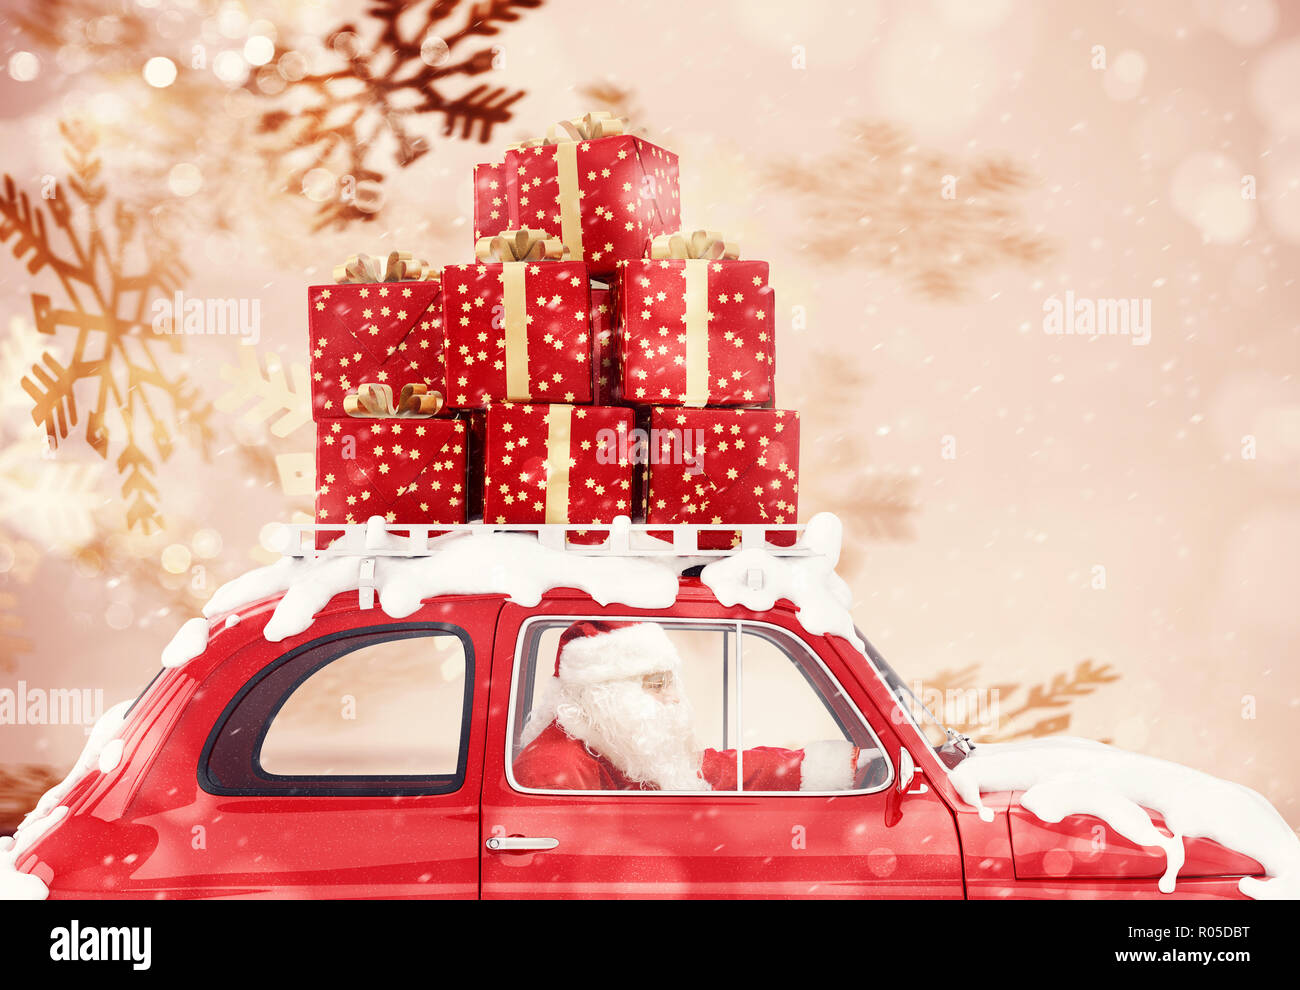 Santa Claus on a red car full of Christmas present with